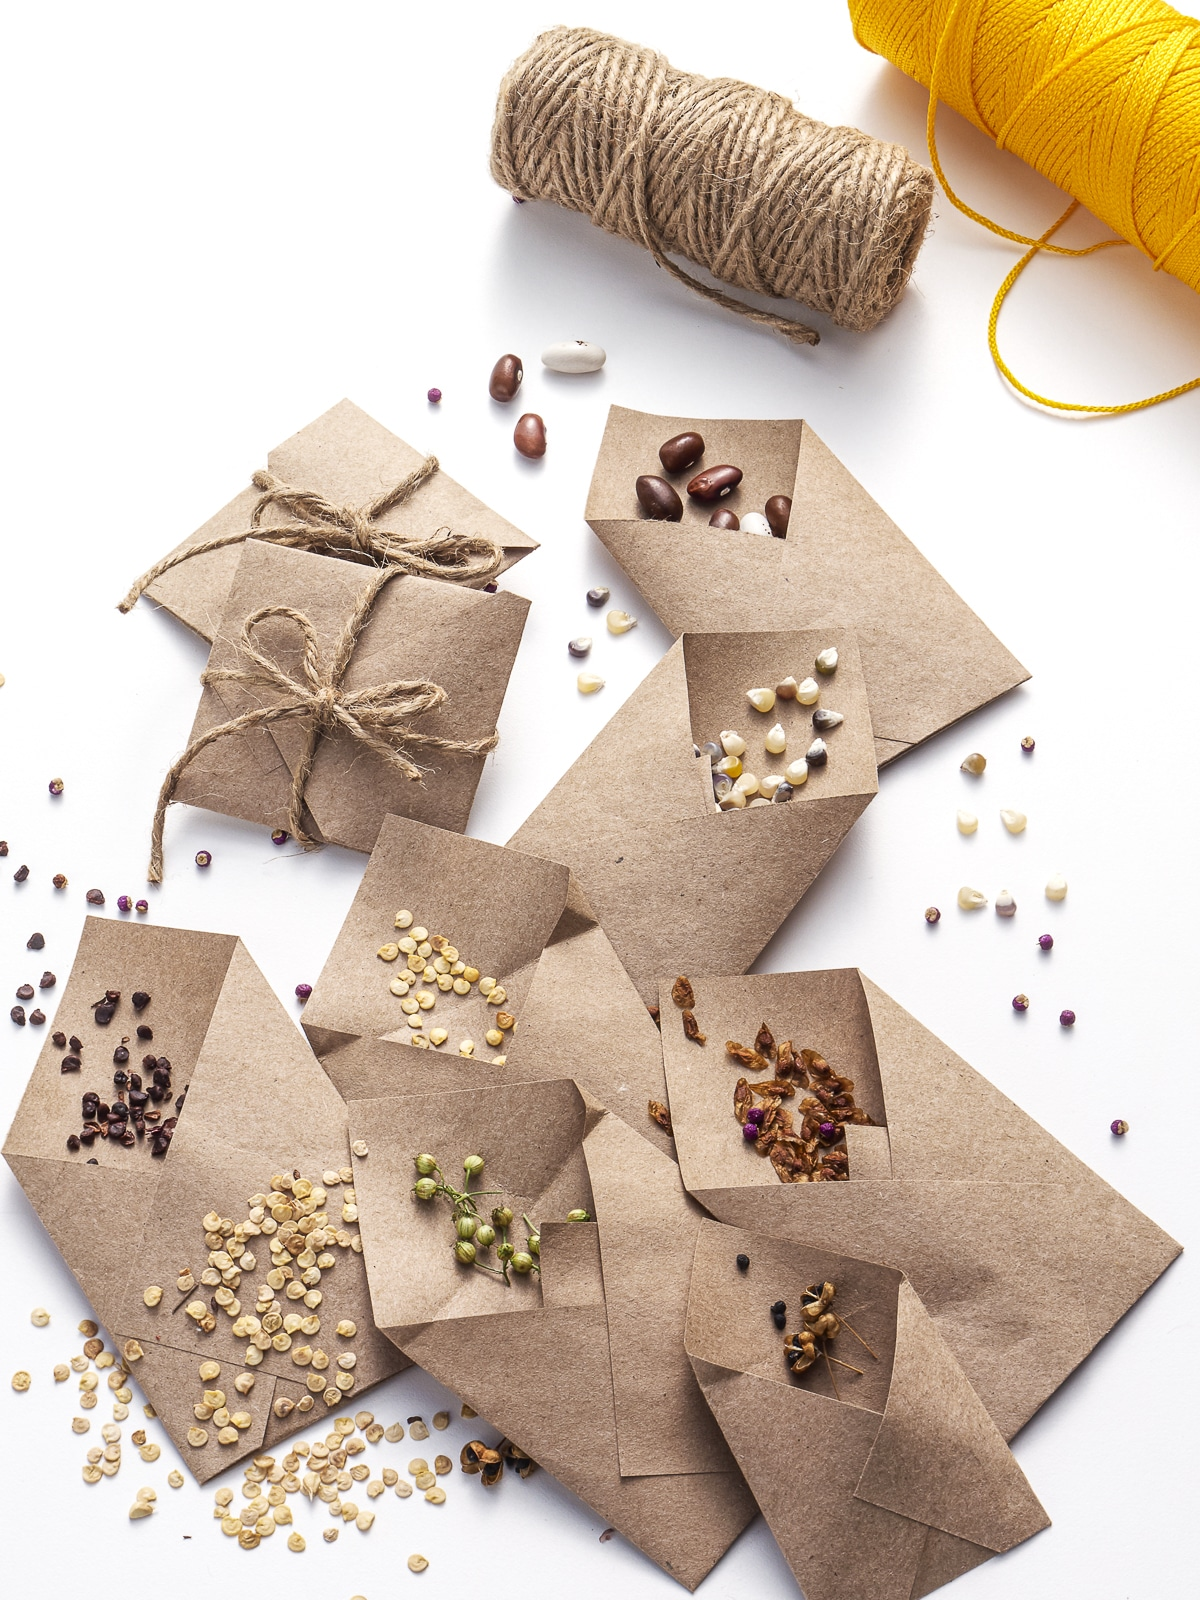 Kraft colored seed packets open on a bright white table with seeds scattered all around.